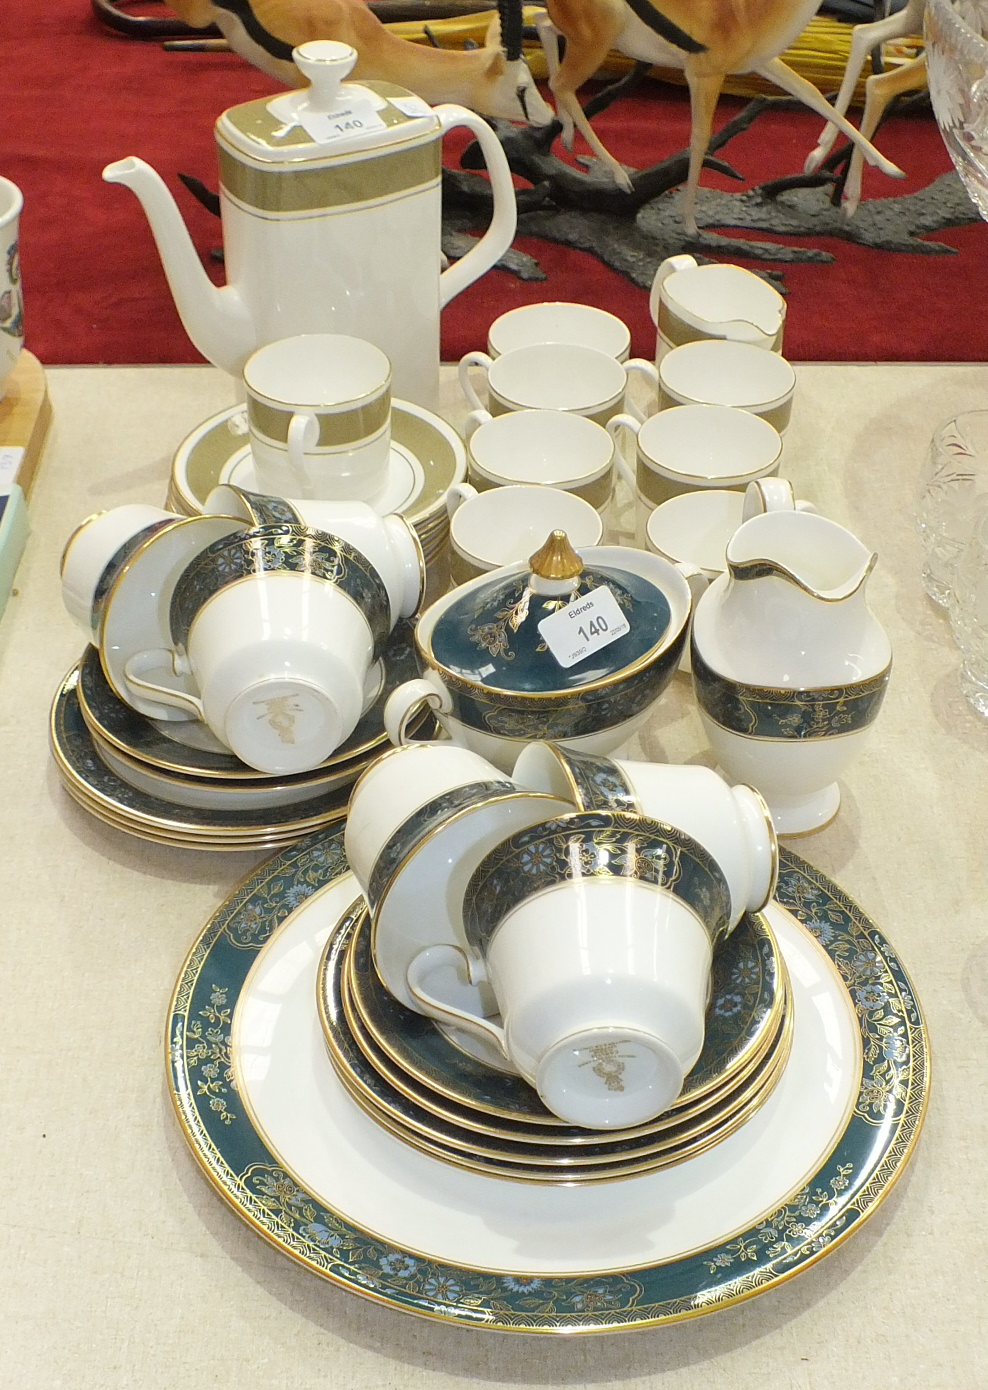 Lot 140 - Sixteen pieces of Royal Doulton 'Antique Gold' decorated coffee ware and nineteen pieces of Royal